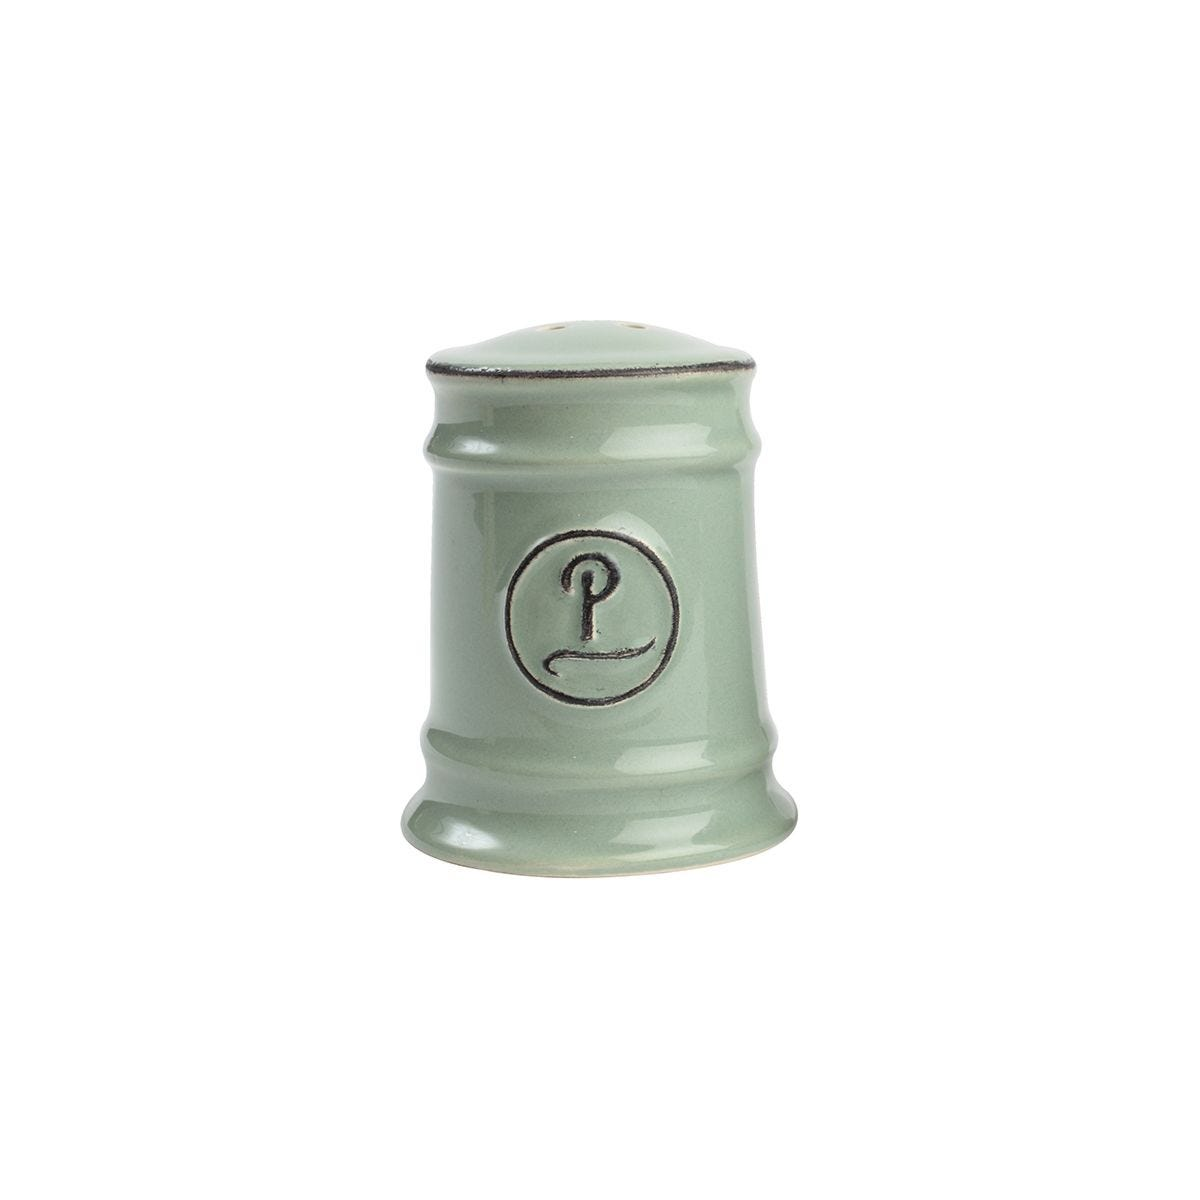 T&G Pride Of Place Pepper Shaker - Old Green